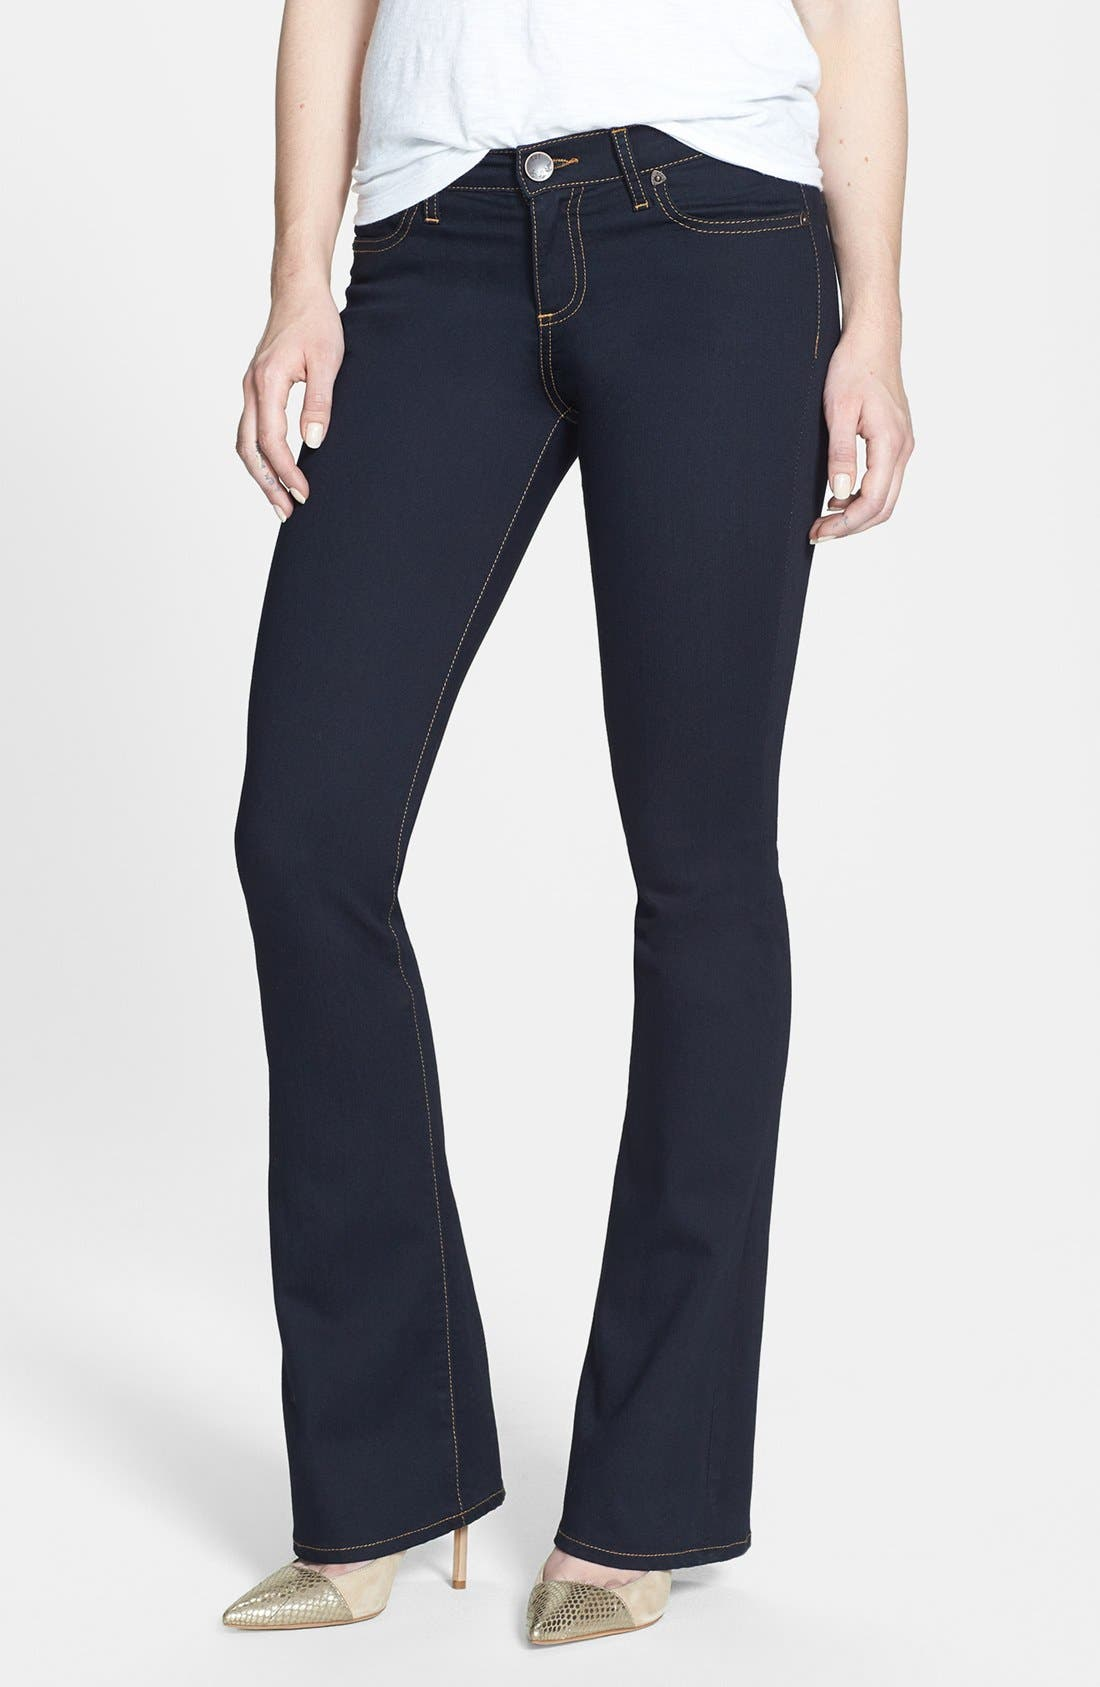 Alternate Image 1 Selected - KUT from the Kloth 'Michelle' Stretch Slim Bootcut Jeans